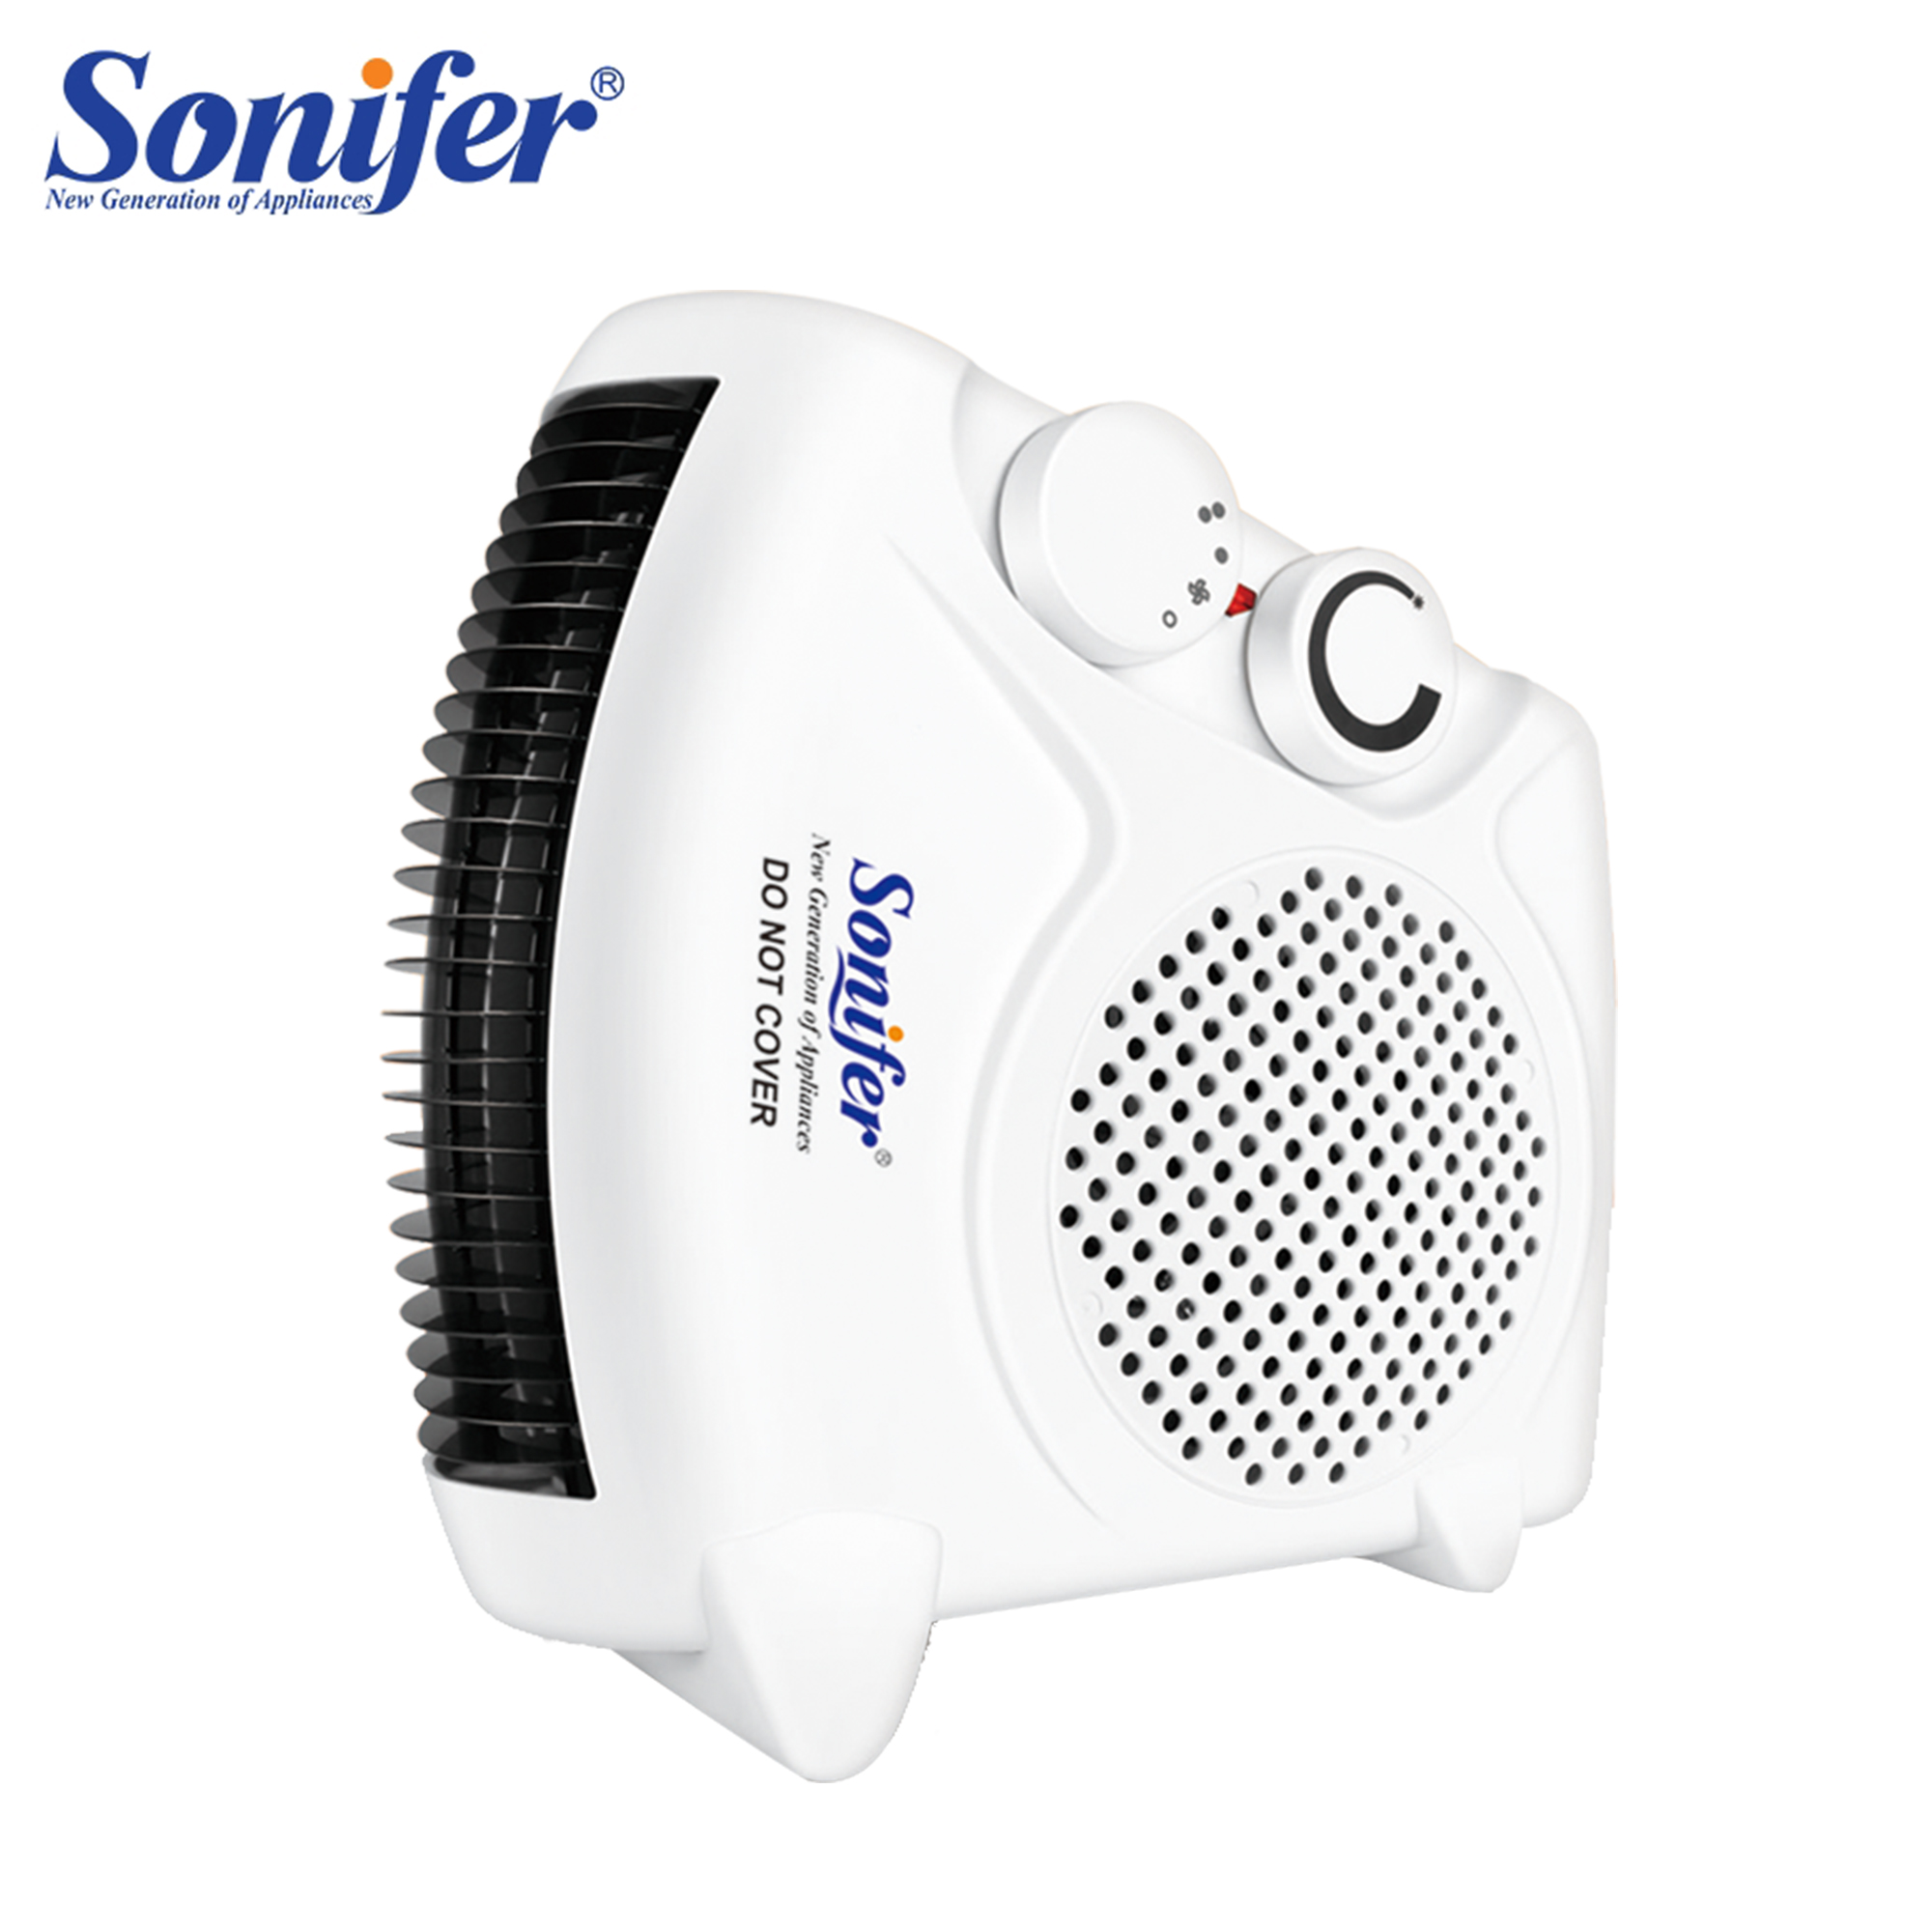 2000W Electric Fan Heater Desktop Heating Camping Any Place AdjustableThermostat Home Room Handy Heating Quick Heat 220V Sonifer